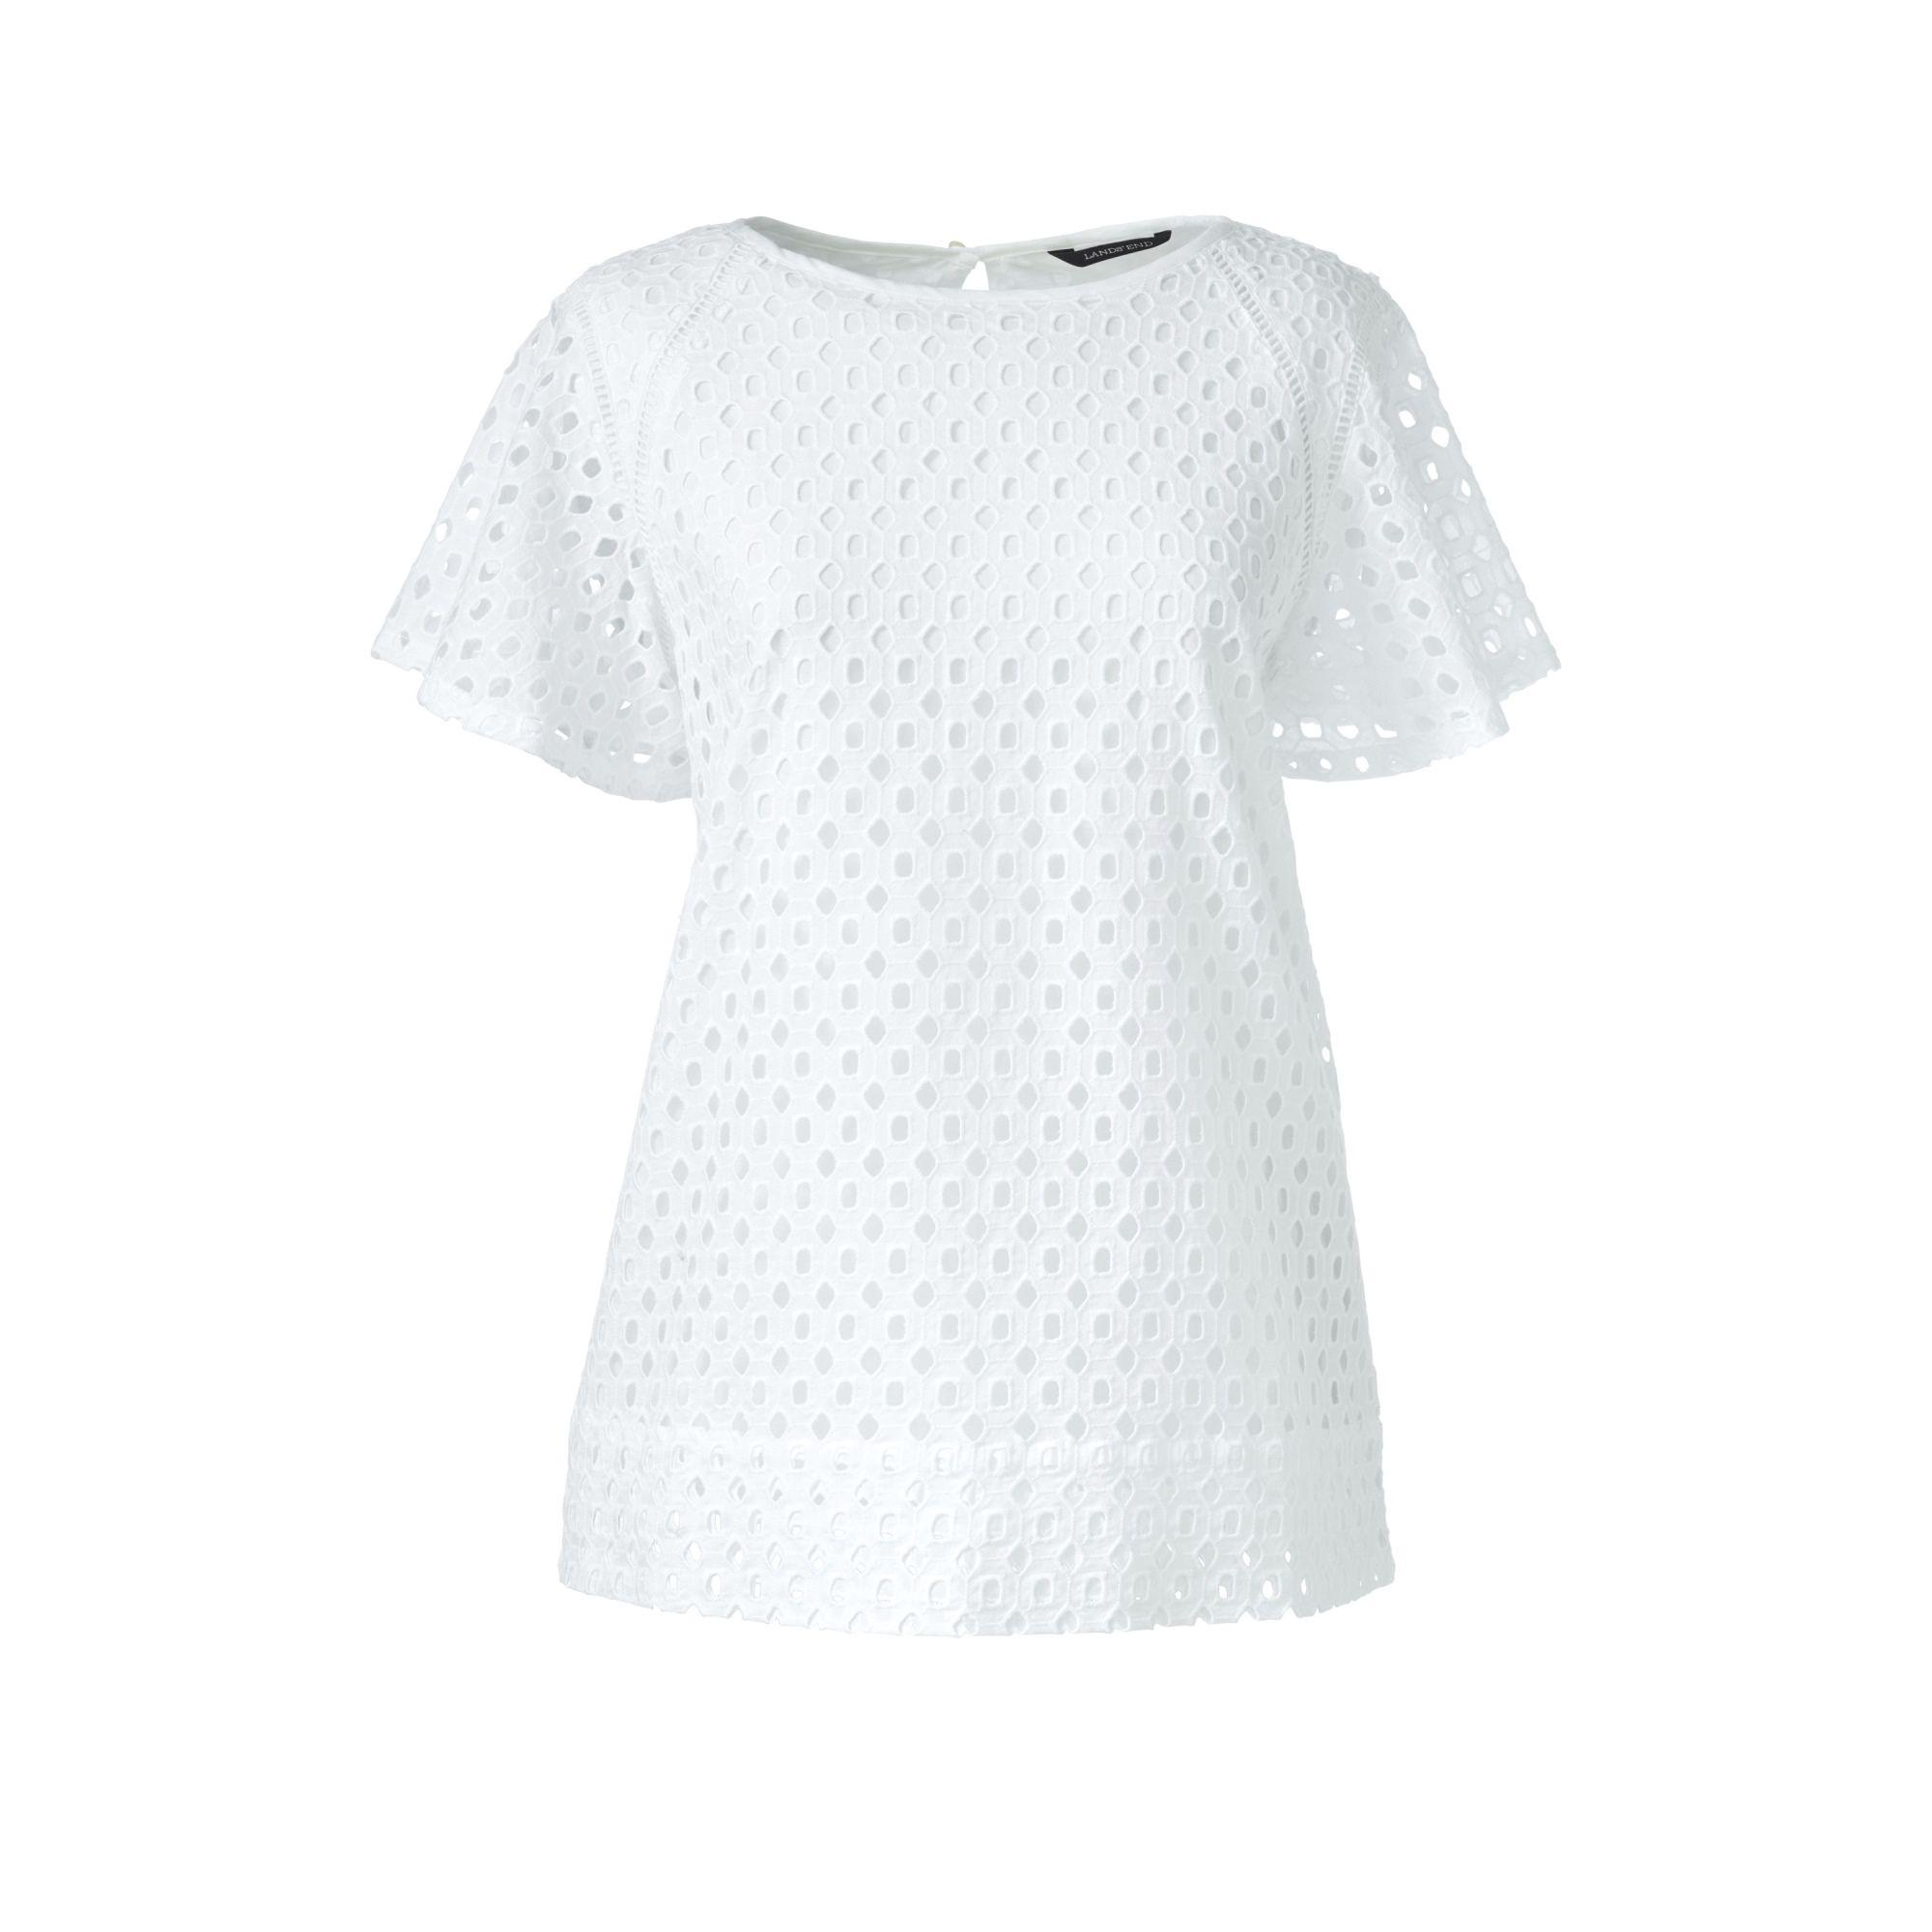 6ac26ebf562264 Gallery. Previously sold at: Debenhams · Women's Bell Sleeved Shirts  Women's Polka Dot Tops Women's Broderie Anglaise ...